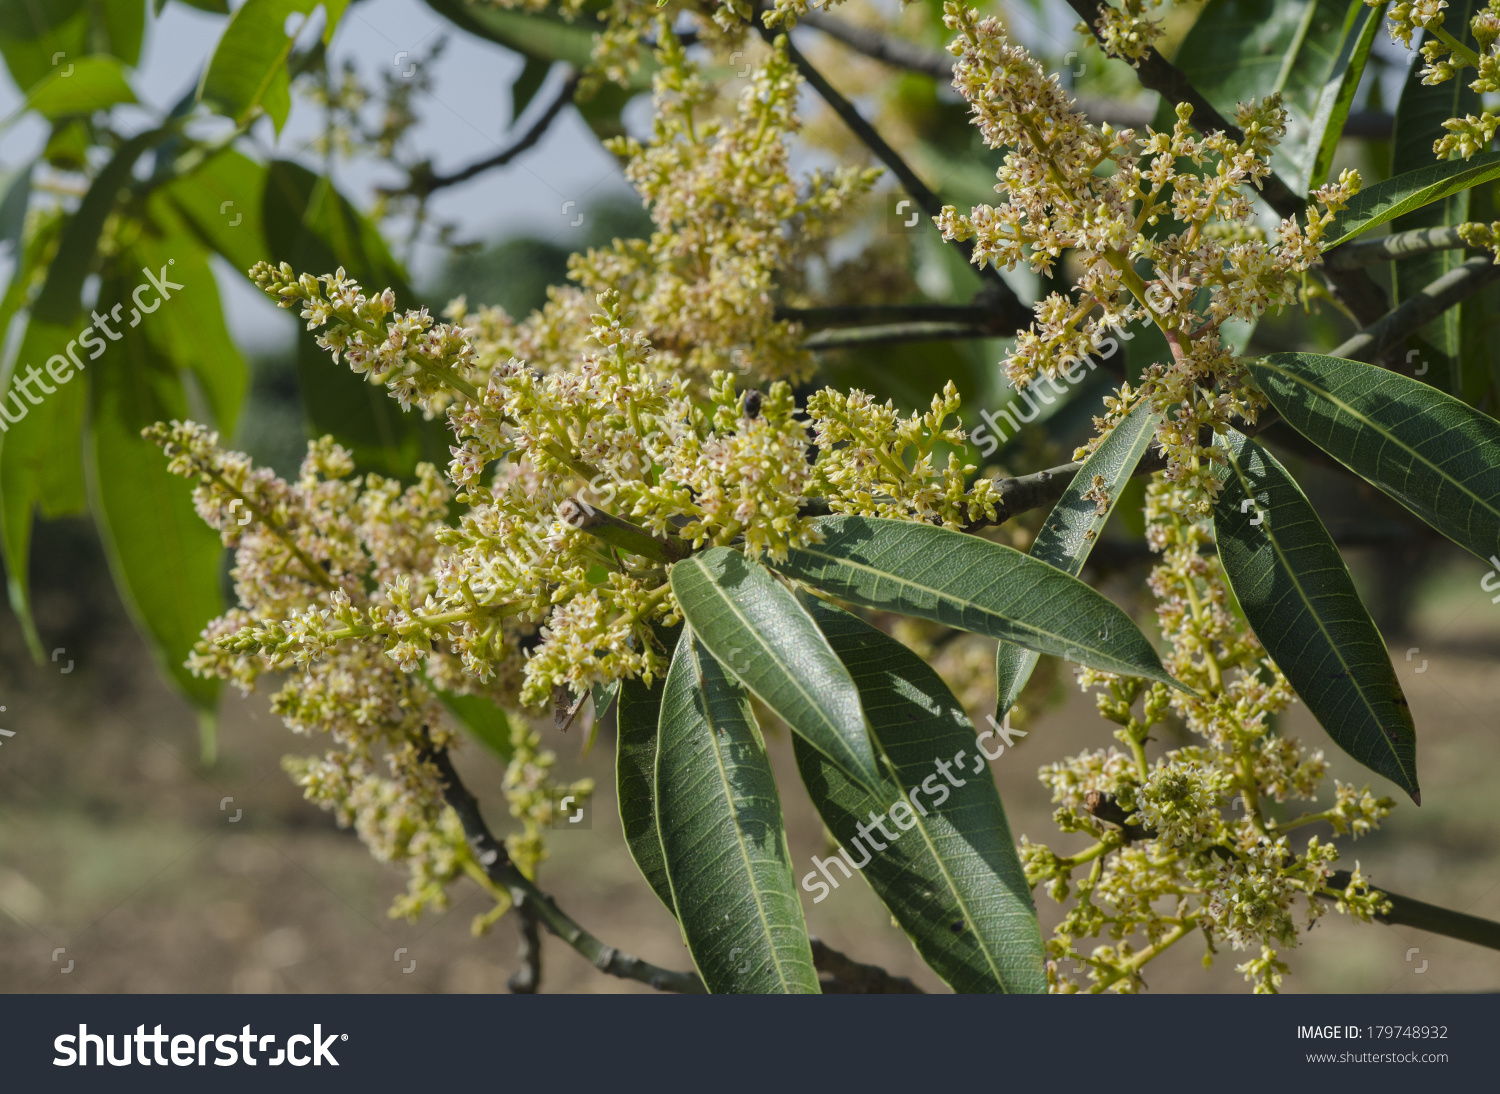 Young Mango Buds Flowers On Tree Stock Photo 179748932.